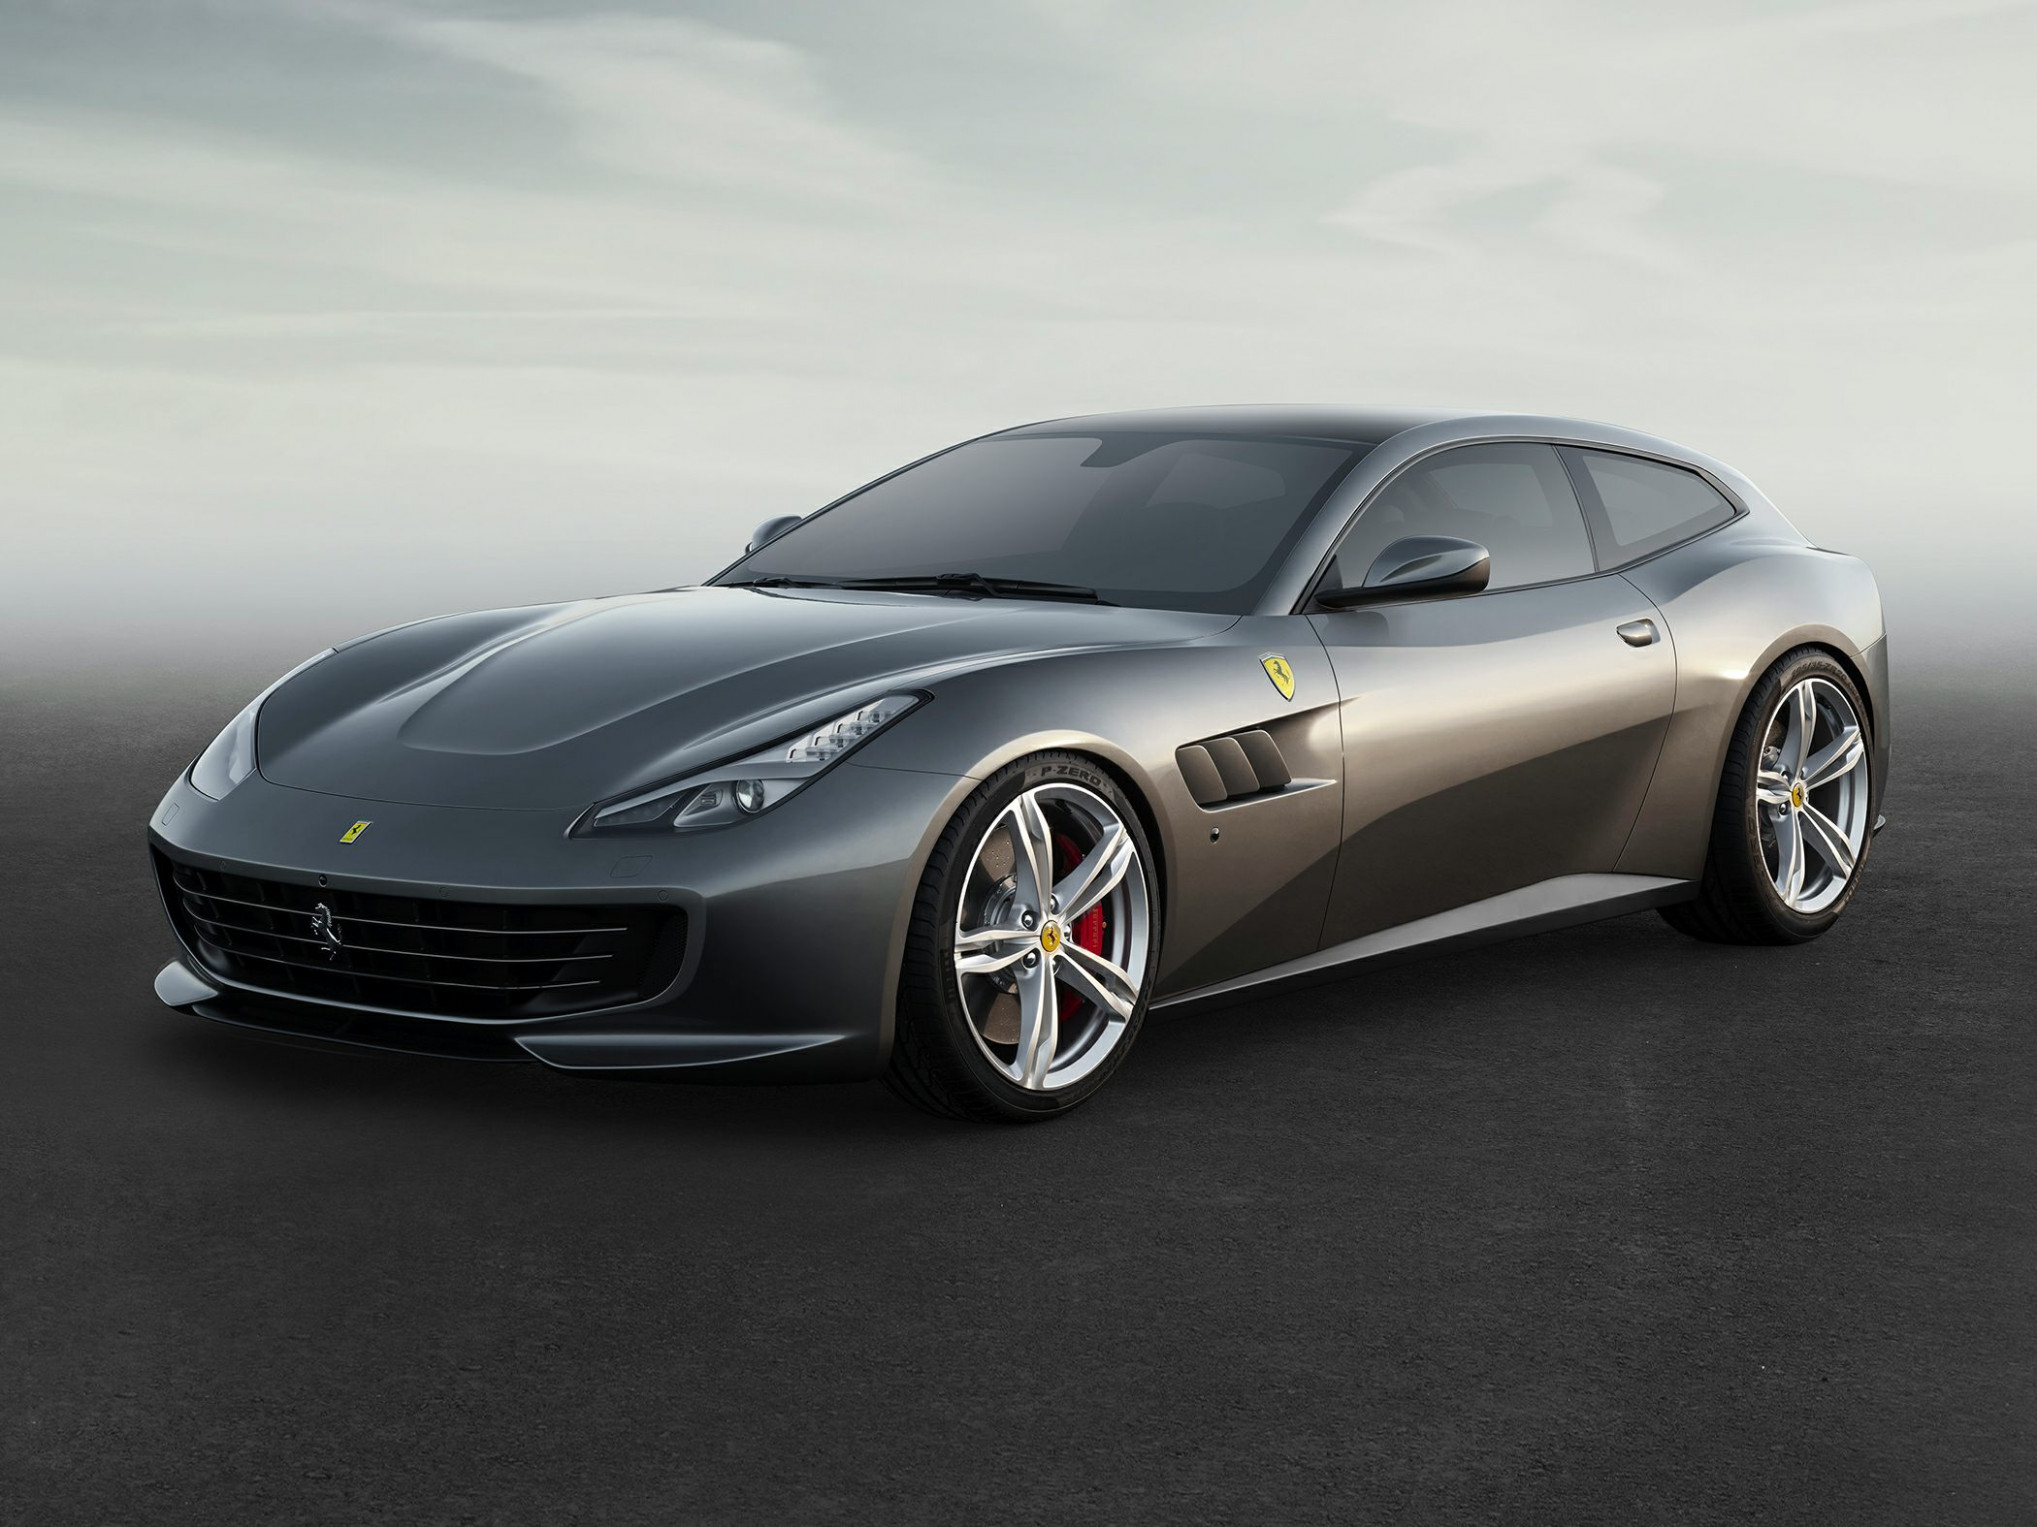 6 Ferrari GTC6Lusso V6 6dr All-wheel Drive Wagon Pictures